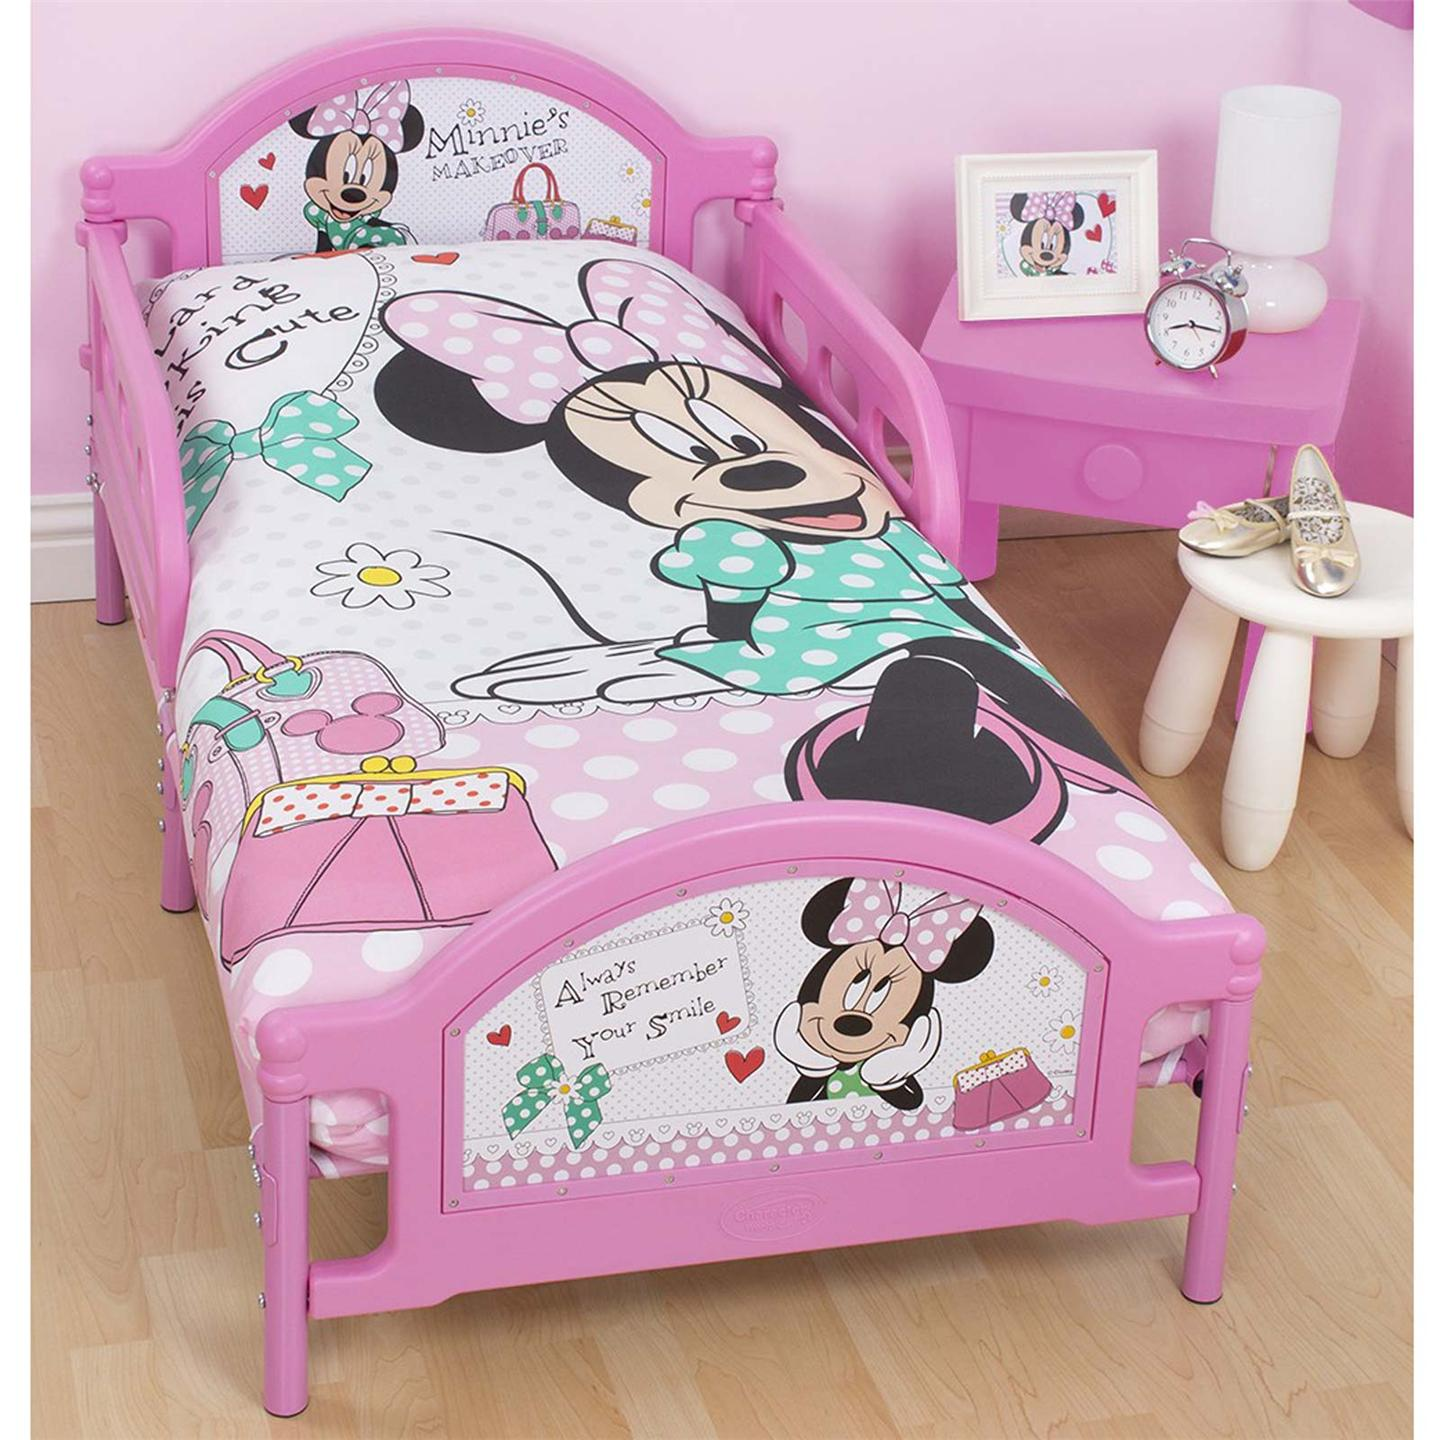 Minnie Mouse Toddler Bedroom Set: Minnie Toddler Bed Set